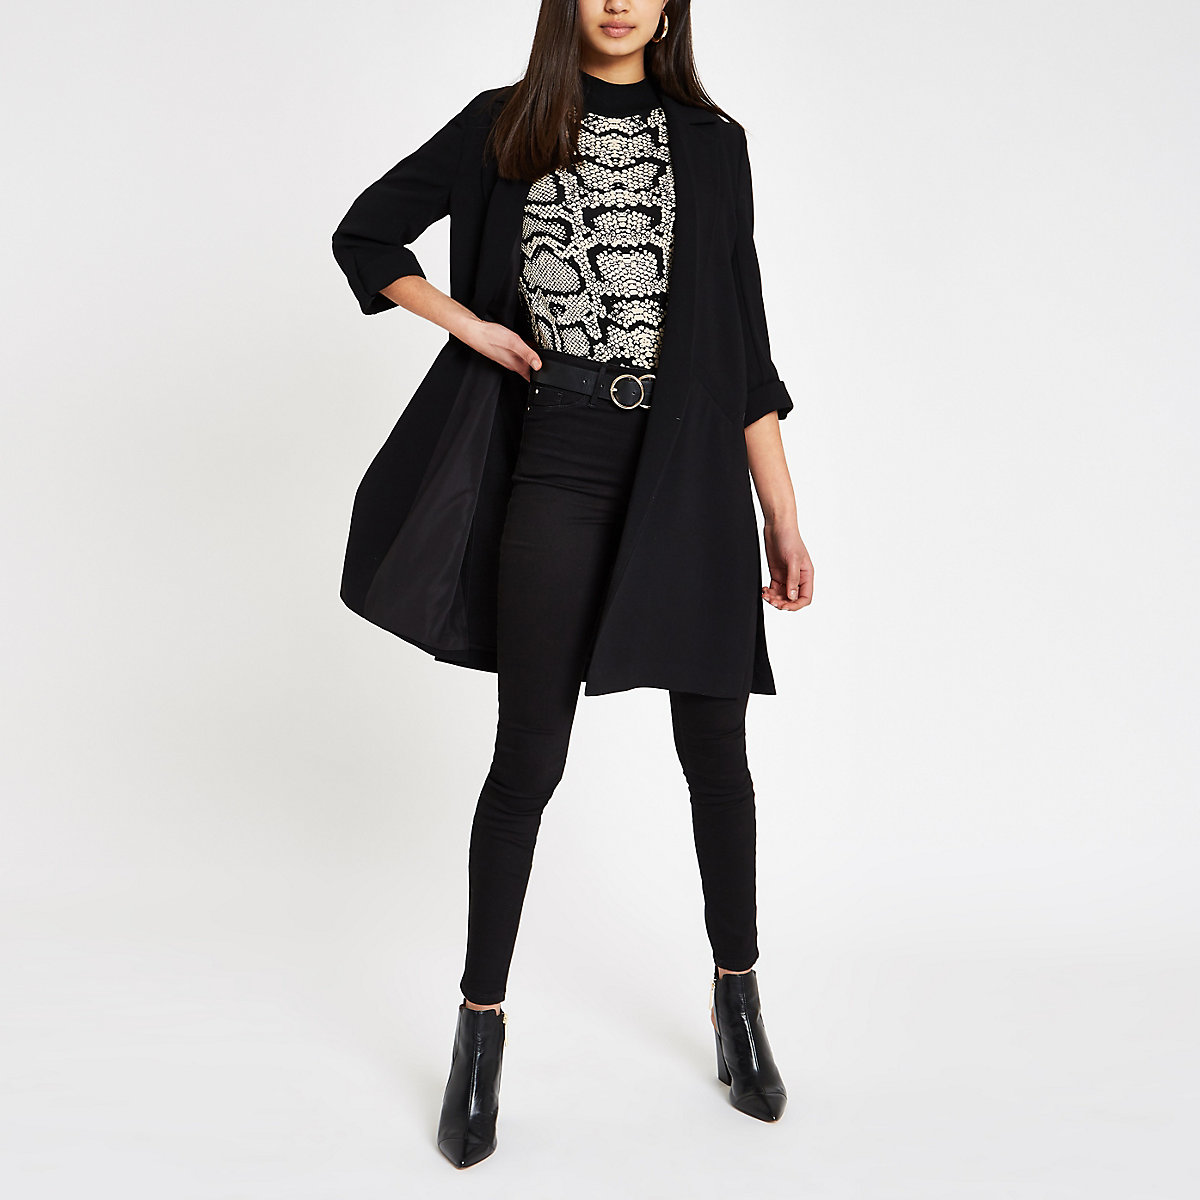 Black longline duster jacket